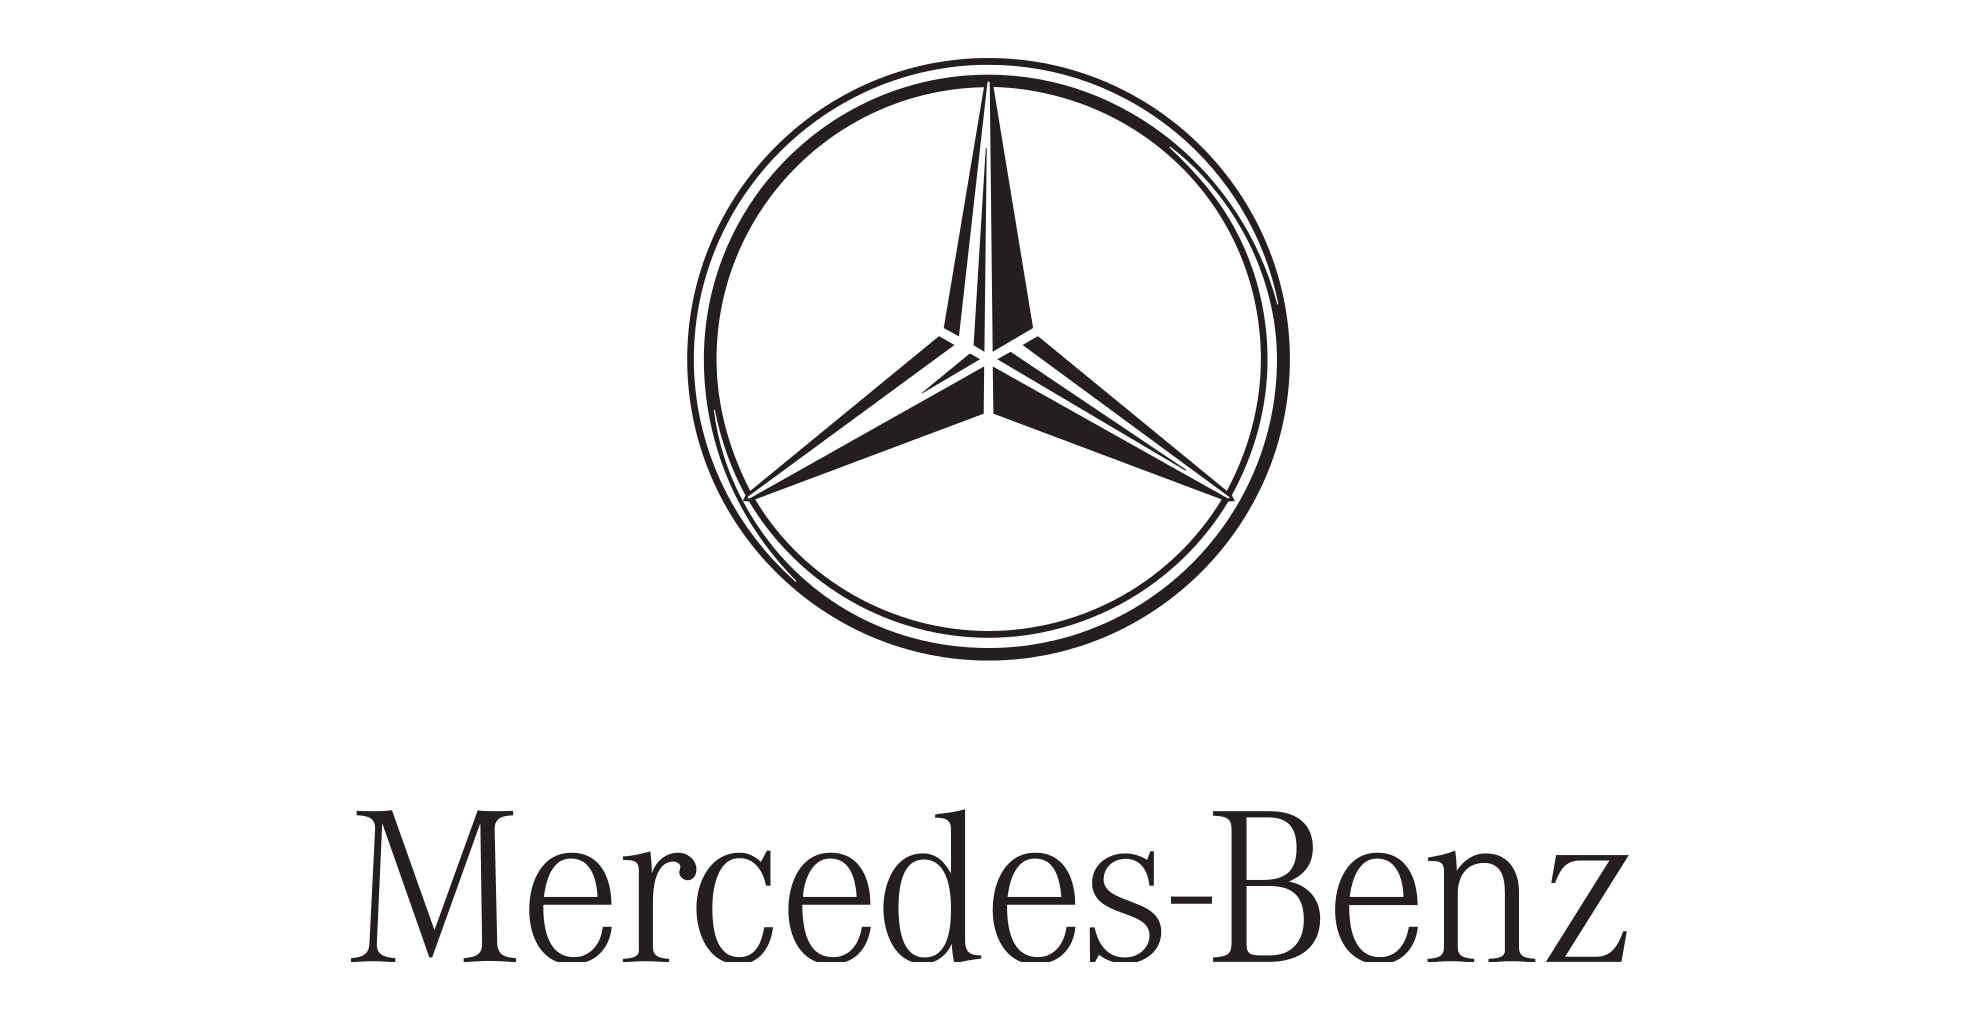 Mercedes benz logo png. Hd meaning information carlogos